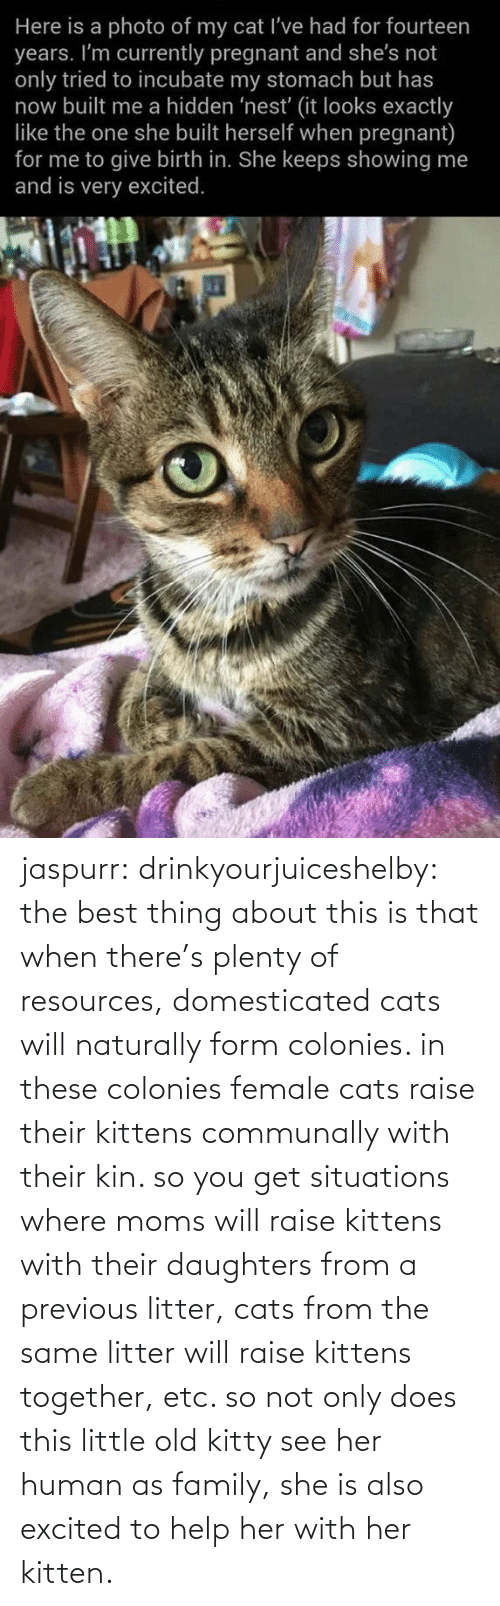 You Get: jaspurr:  drinkyourjuiceshelby:    the best thing about this is that when there's plenty of resources, domesticated cats will naturally form colonies. in these colonies female cats raise their kittens communally with their kin. so you get situations where moms will raise kittens with their daughters from a previous litter, cats from the same litter will raise kittens together, etc. so not only does this little old kitty see her human as family, she is also excited to help her with her kitten.